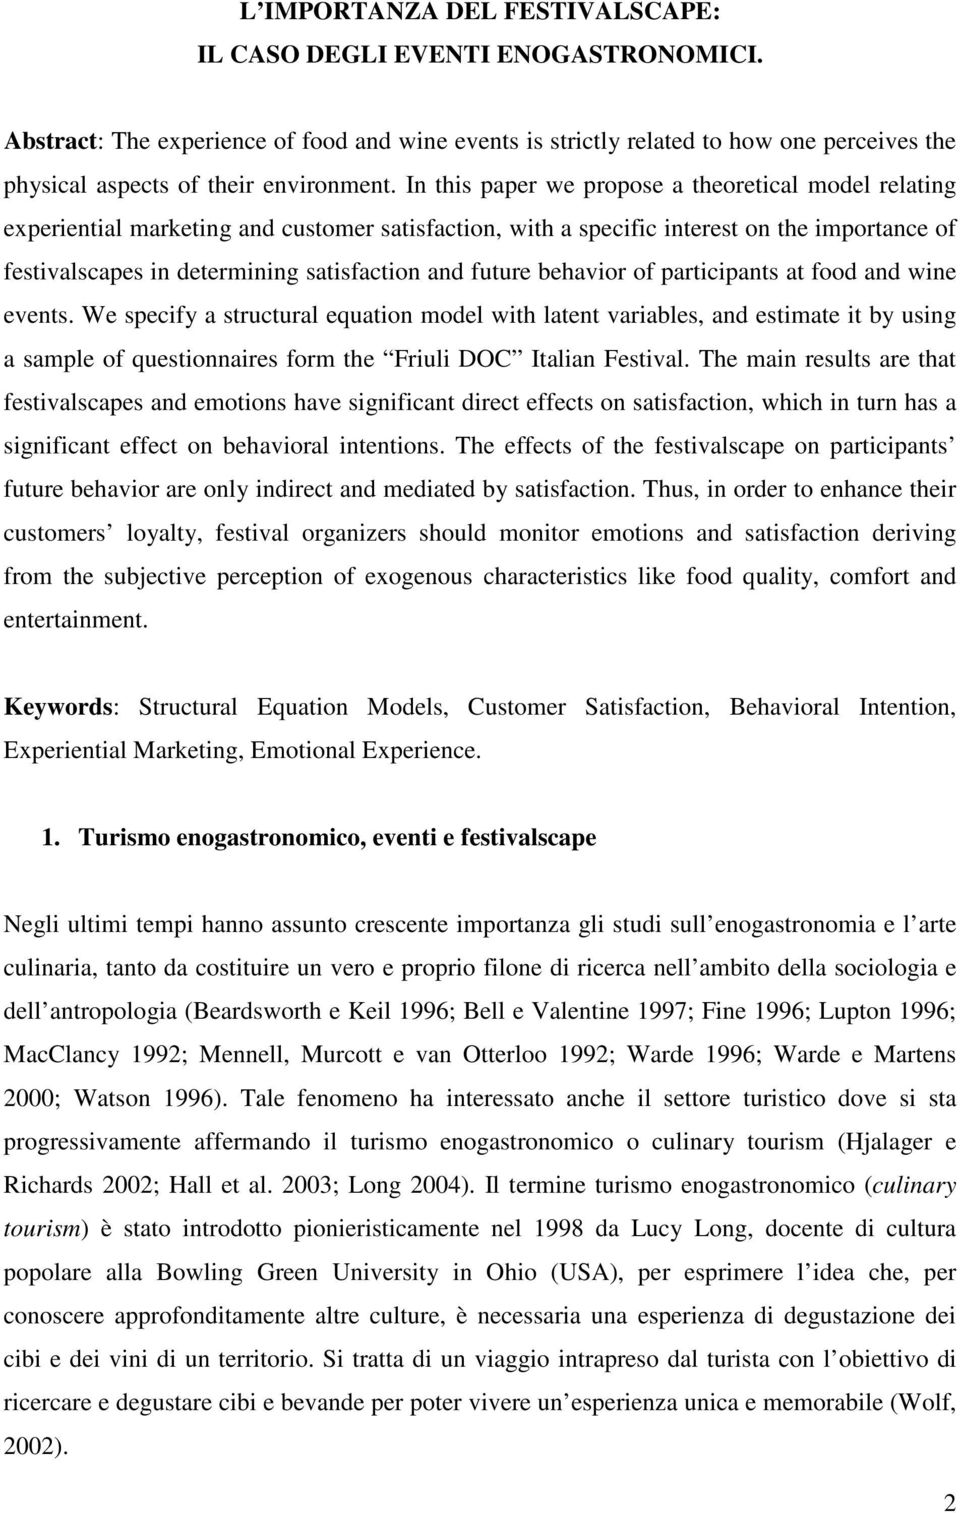 In this paper we propose a theoretical model relating experiential marketing and customer satisfaction, with a specific interest on the importance of festivalscapes in determining satisfaction and